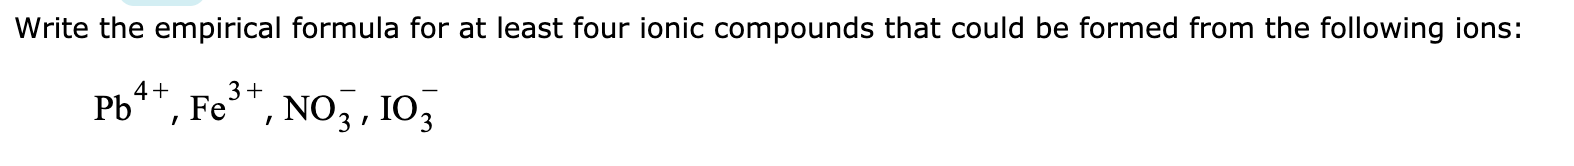 Write the empirical formula for at least four ionic compounds that could be formed from the following ions: b4, Fe, Noj, 103 /